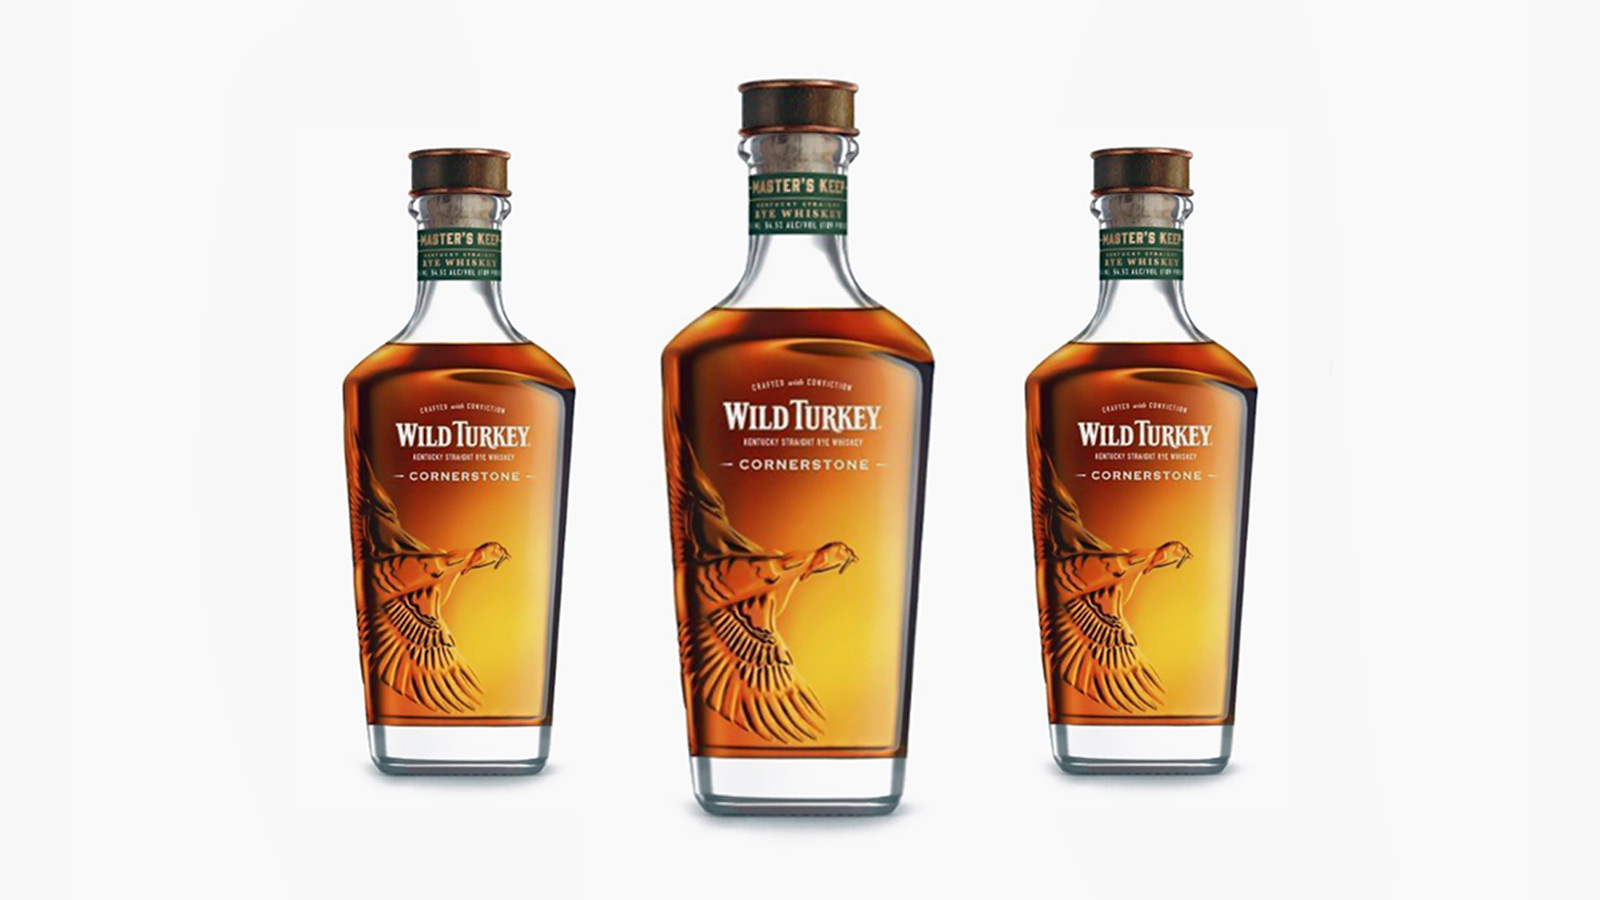 Wild Turkey Master's Keep Cornerstone Rye Whiskey